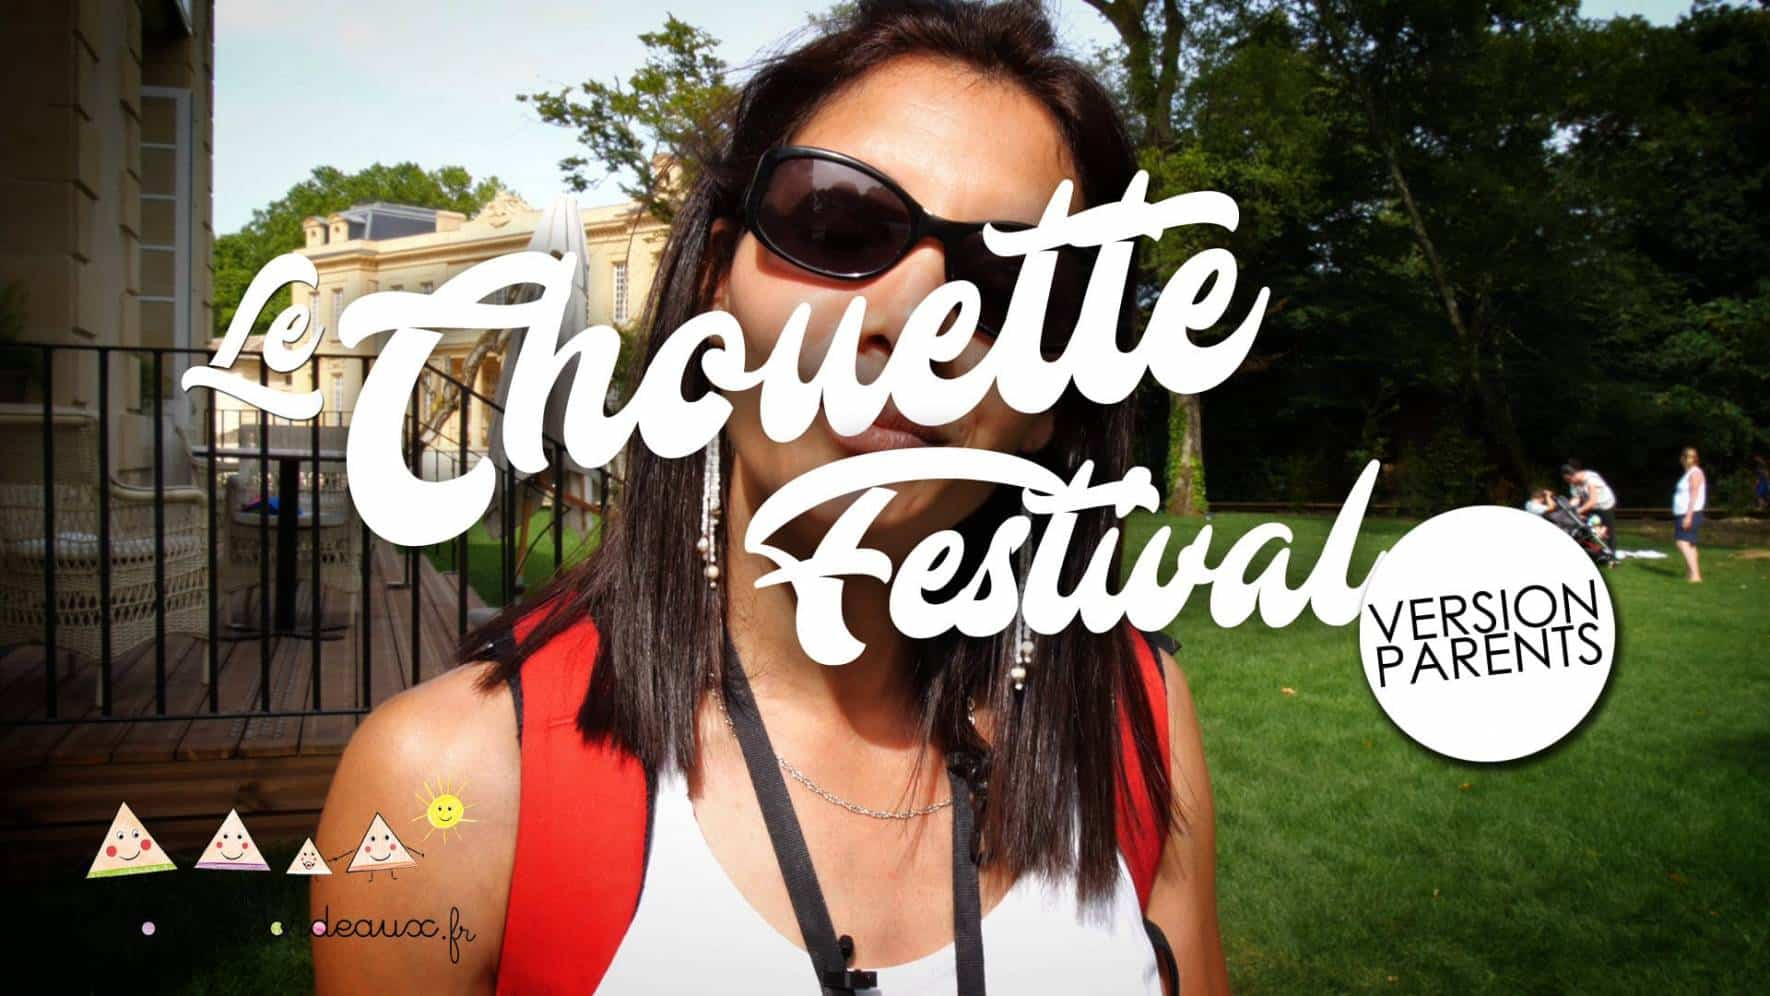 Enfant Bordeaux, le Chouette Festival version Parents